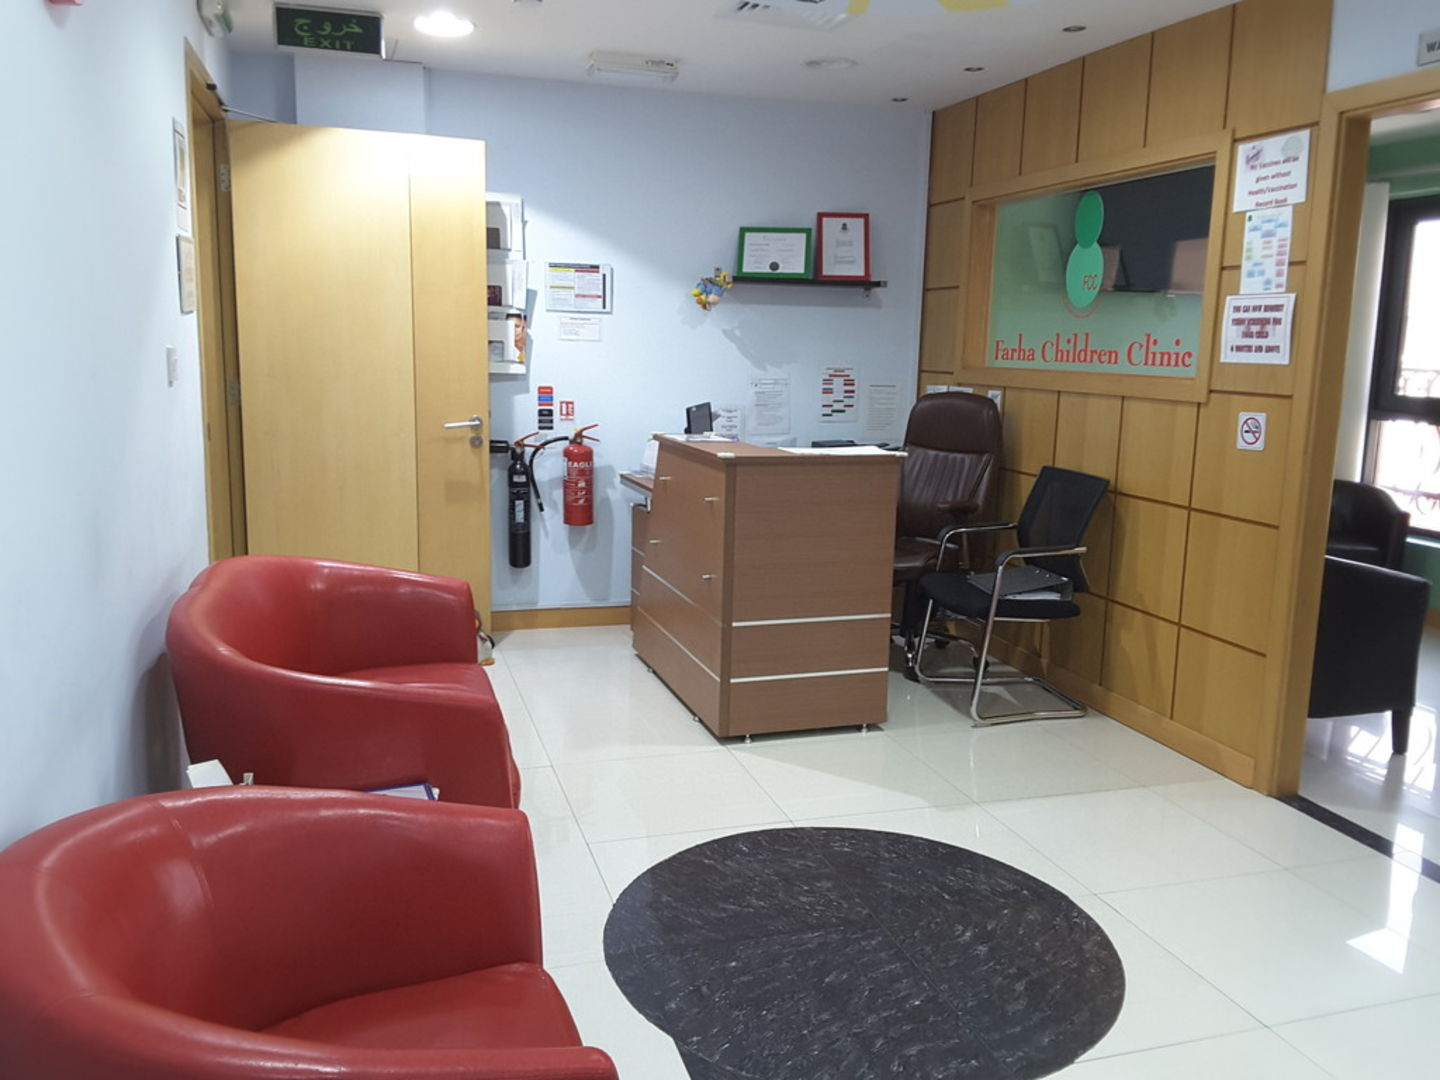 HiDubai-business-farha-children-clinic-beauty-wellness-health-hospitals-clinics-dubai-healthcare-city-umm-hurair-2-dubai-2